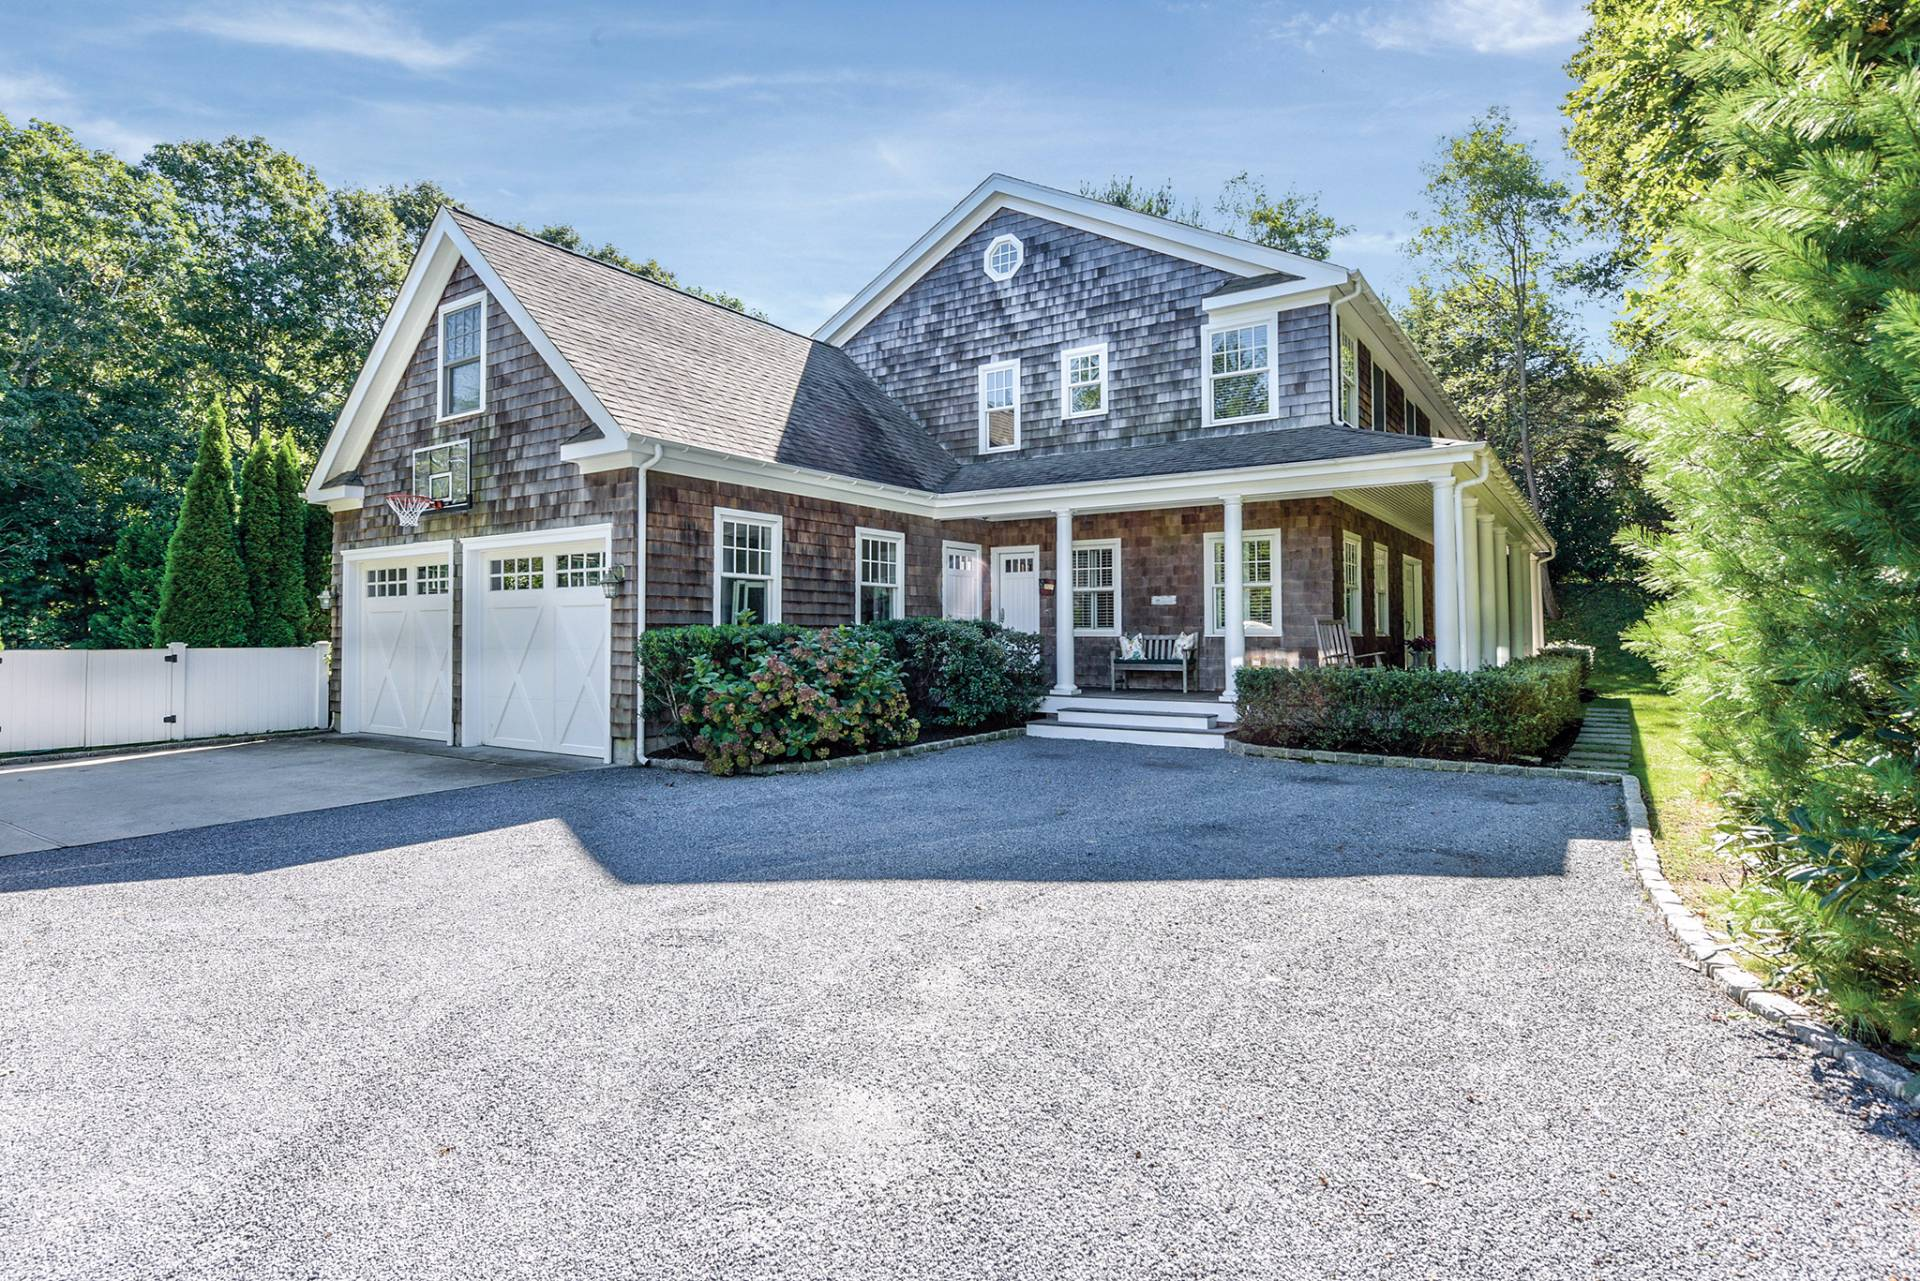 Single Family Home for Sale at Wainscott Traditional 16 East Gate Road, Wainscott, New York